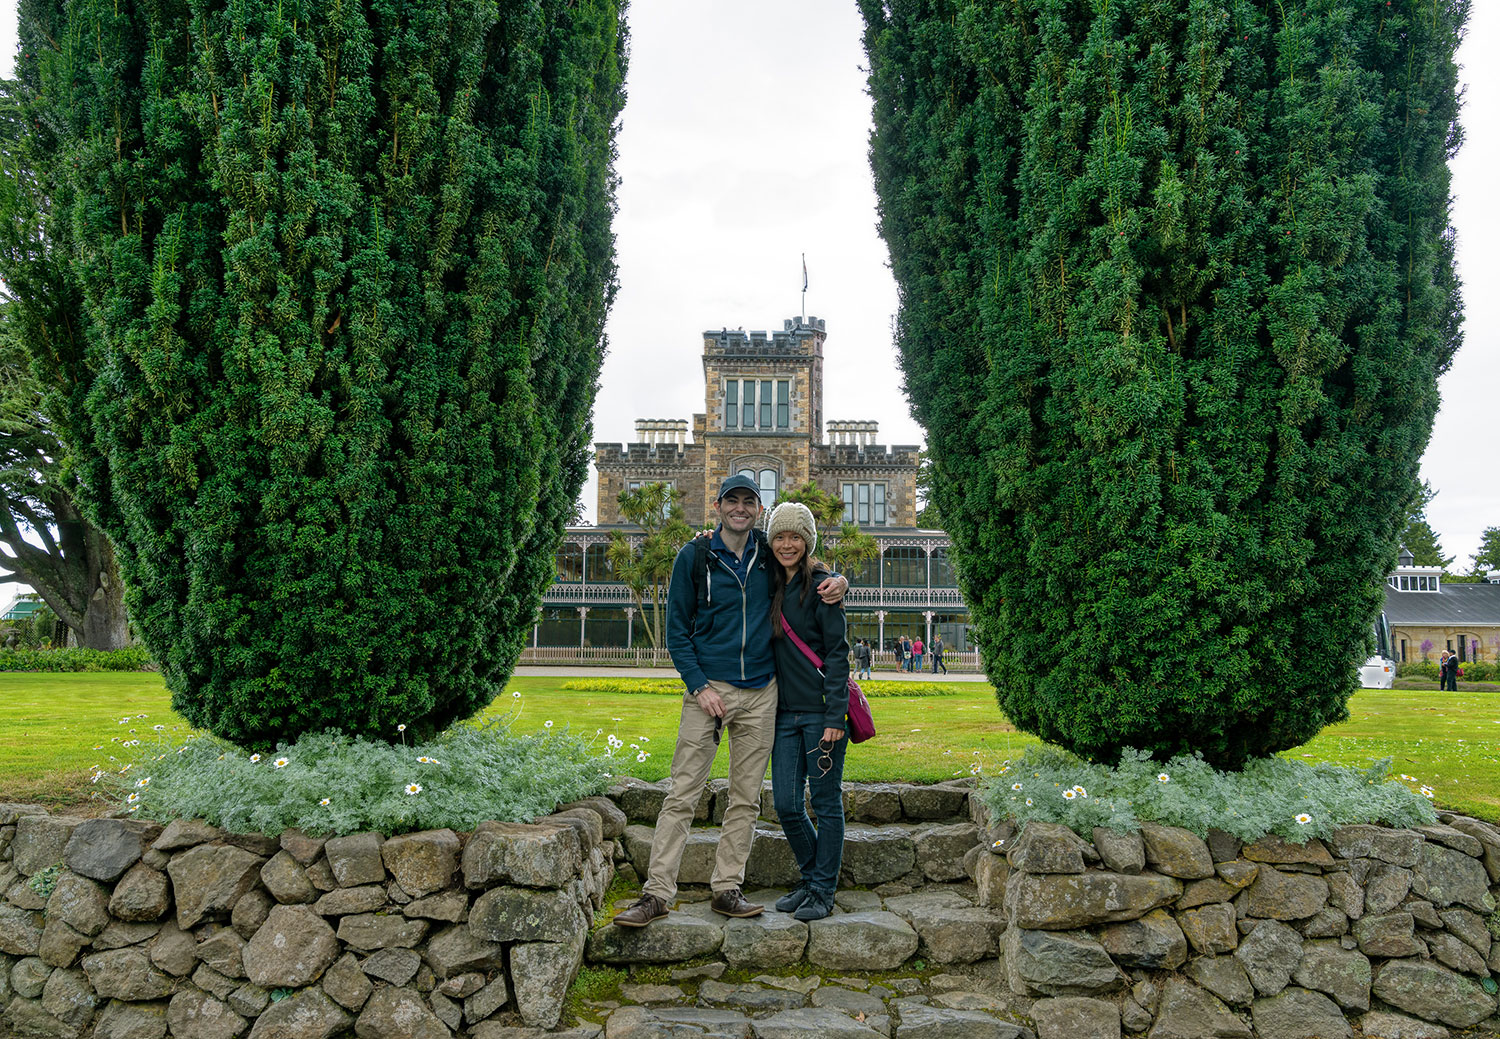 Thaneeya McArdle and her husband Marcus at Larnarch Castle in New Zealand